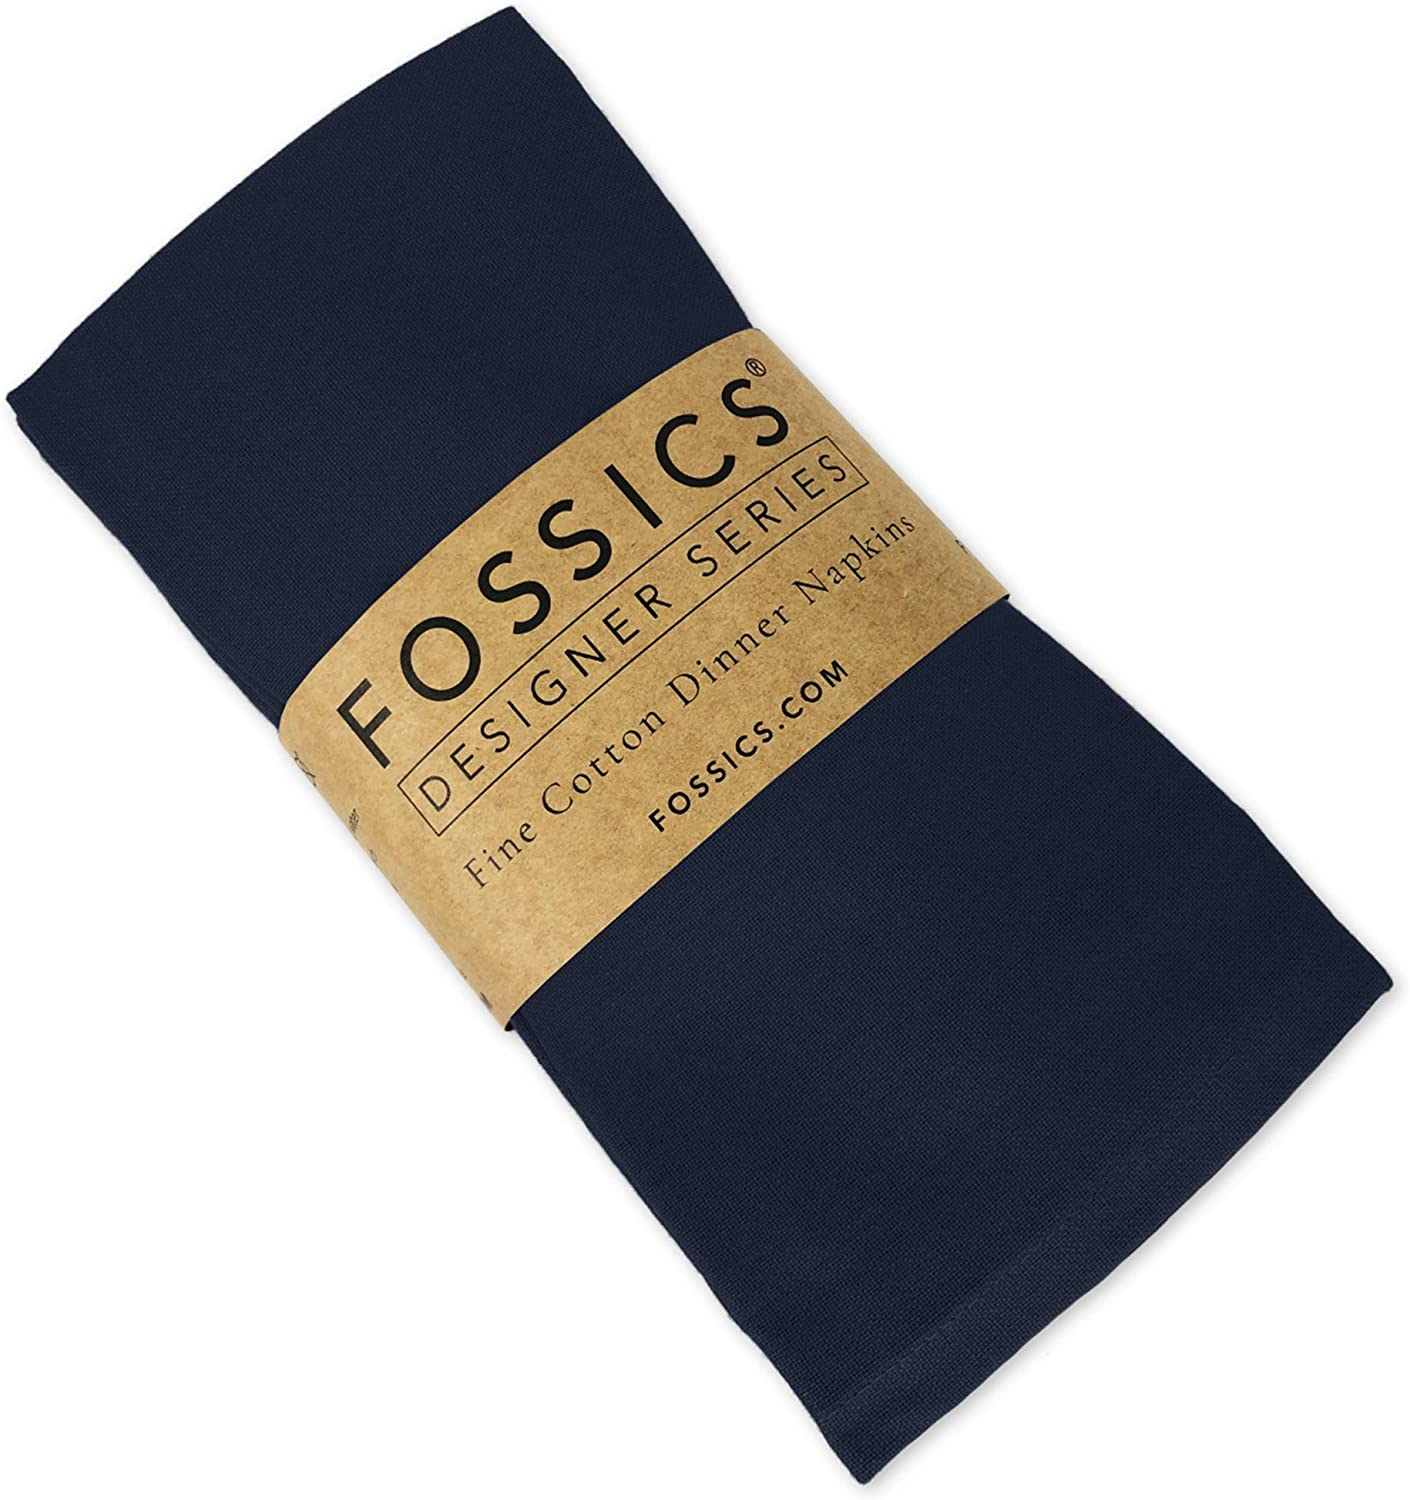 FOSSICS Designer Cotton Napkins from 100% Responsibly-Farmed Natural Cotton Cloth | Oversized 20 x 20 inches for Dinner, Events, Weddings | One Dozen, Black